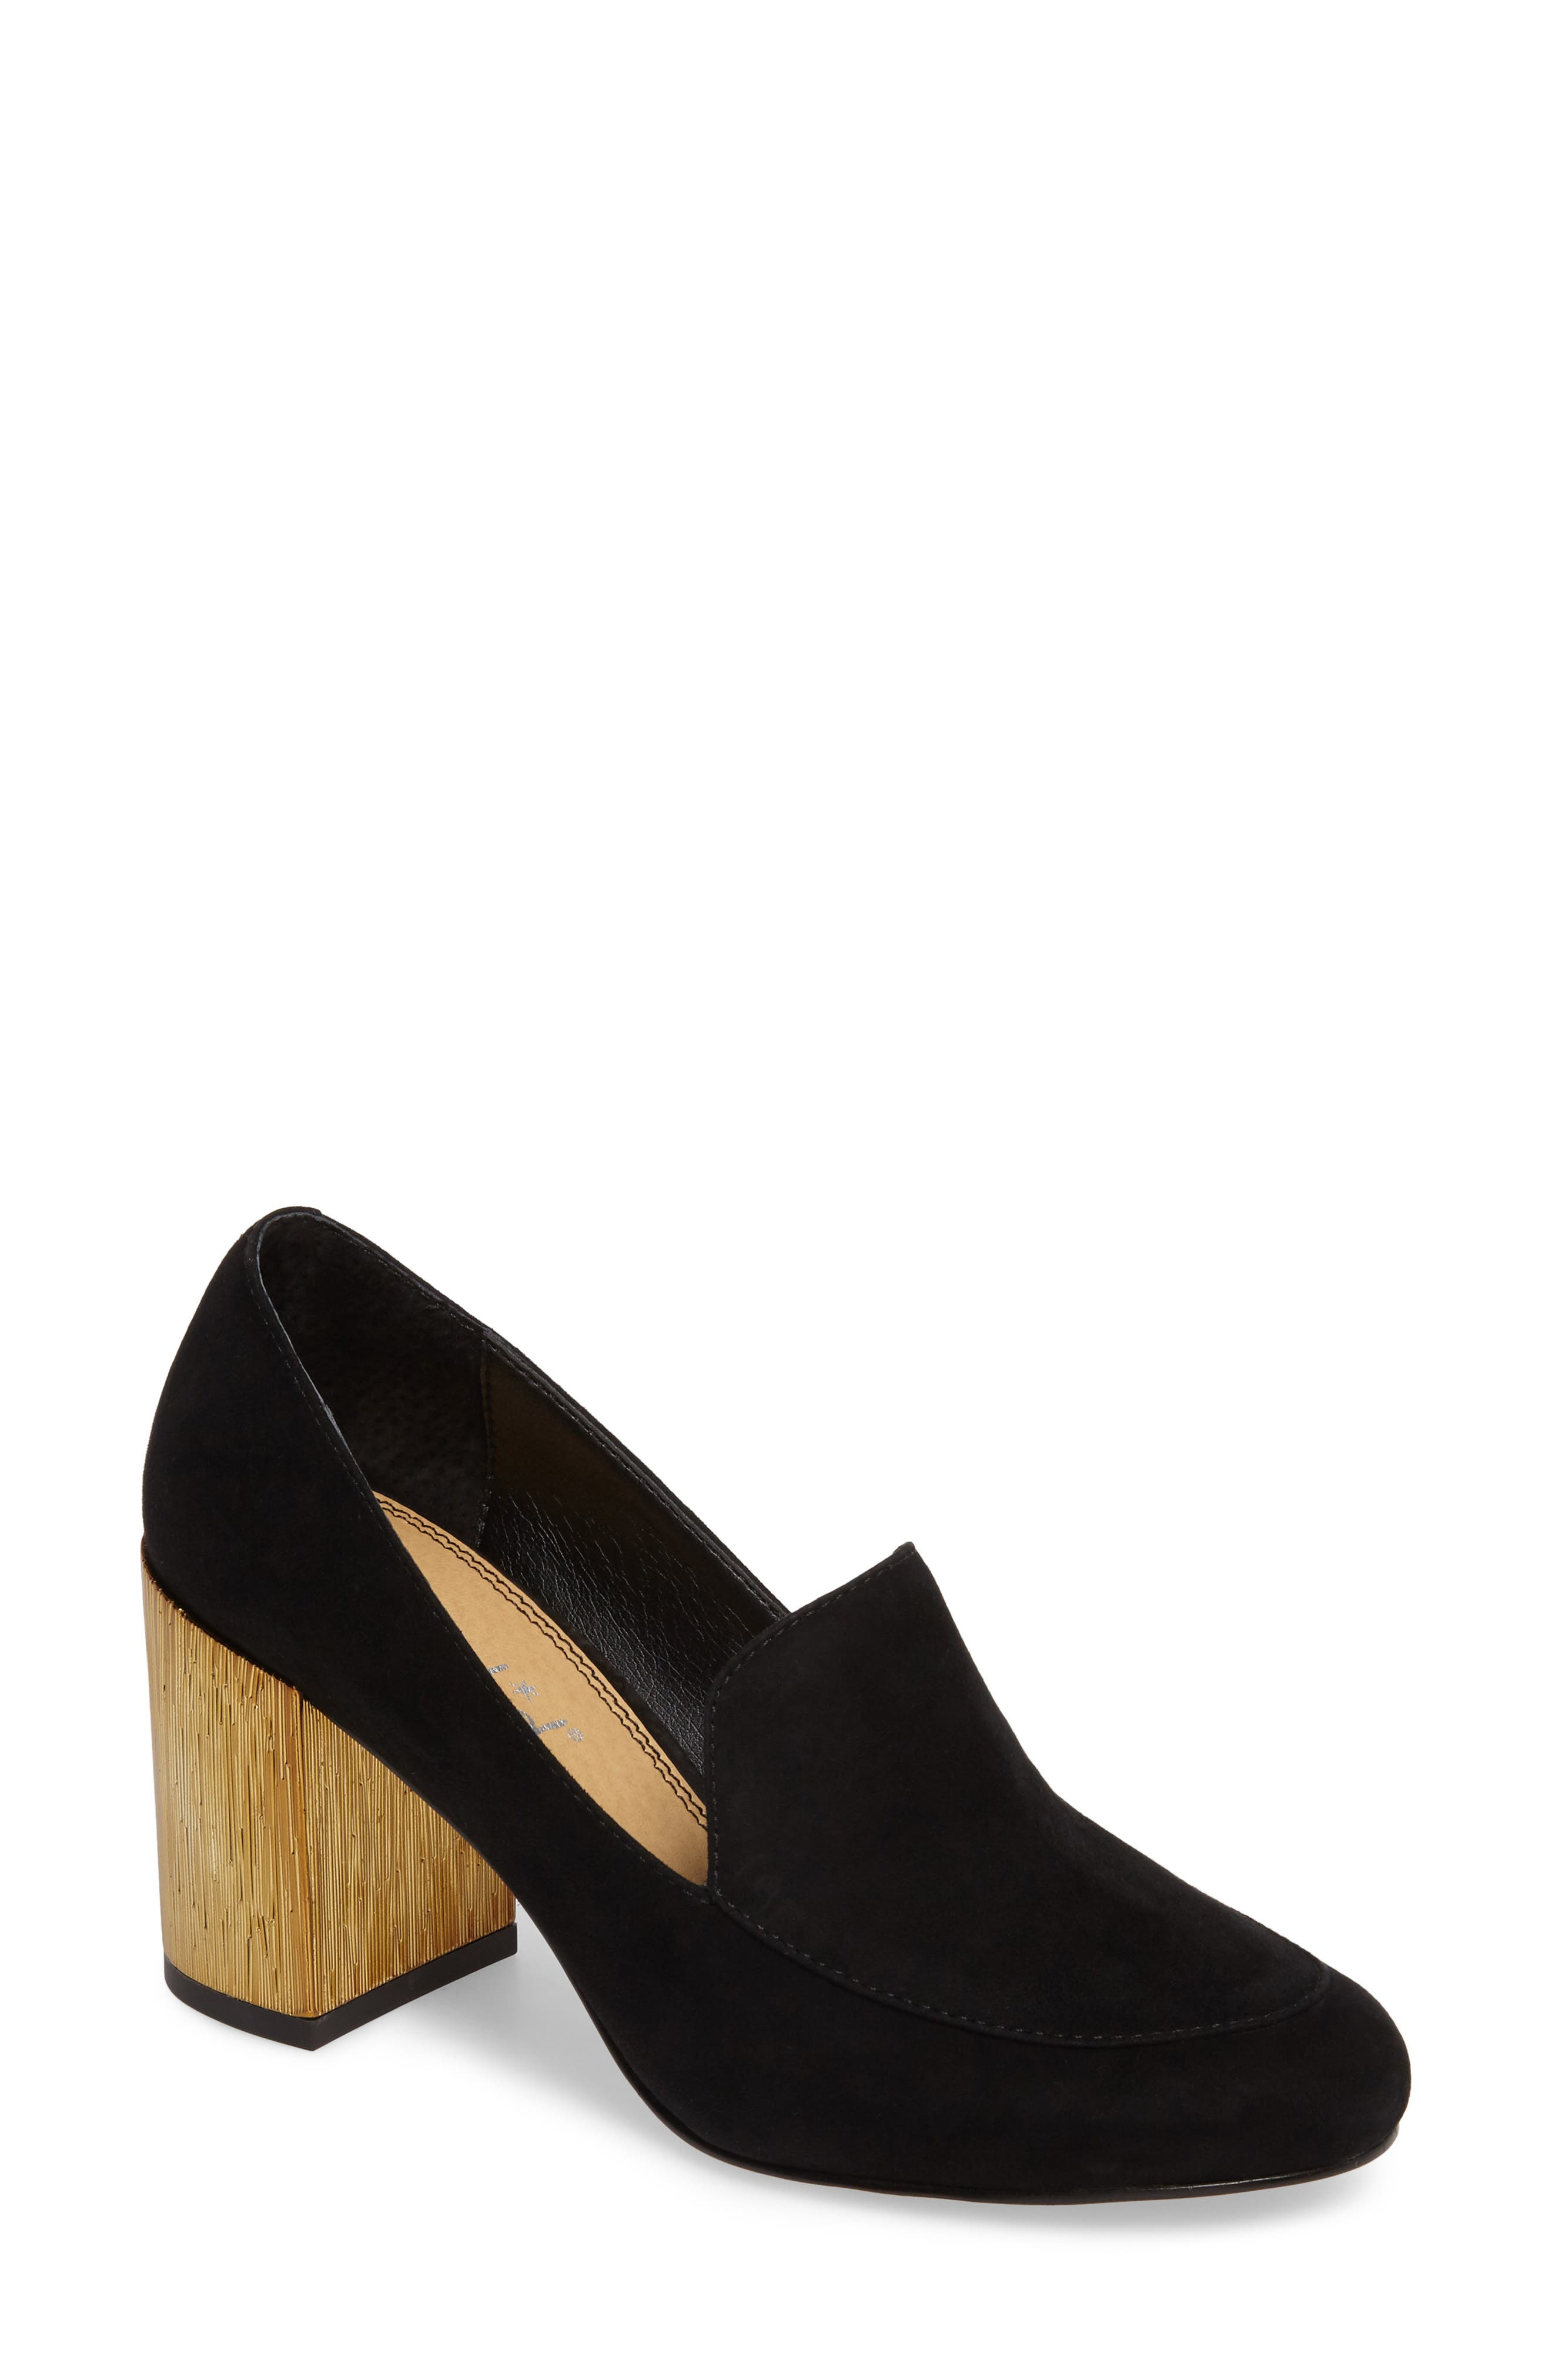 Main Image - Splendid Rosita Loafer Pump (Women)